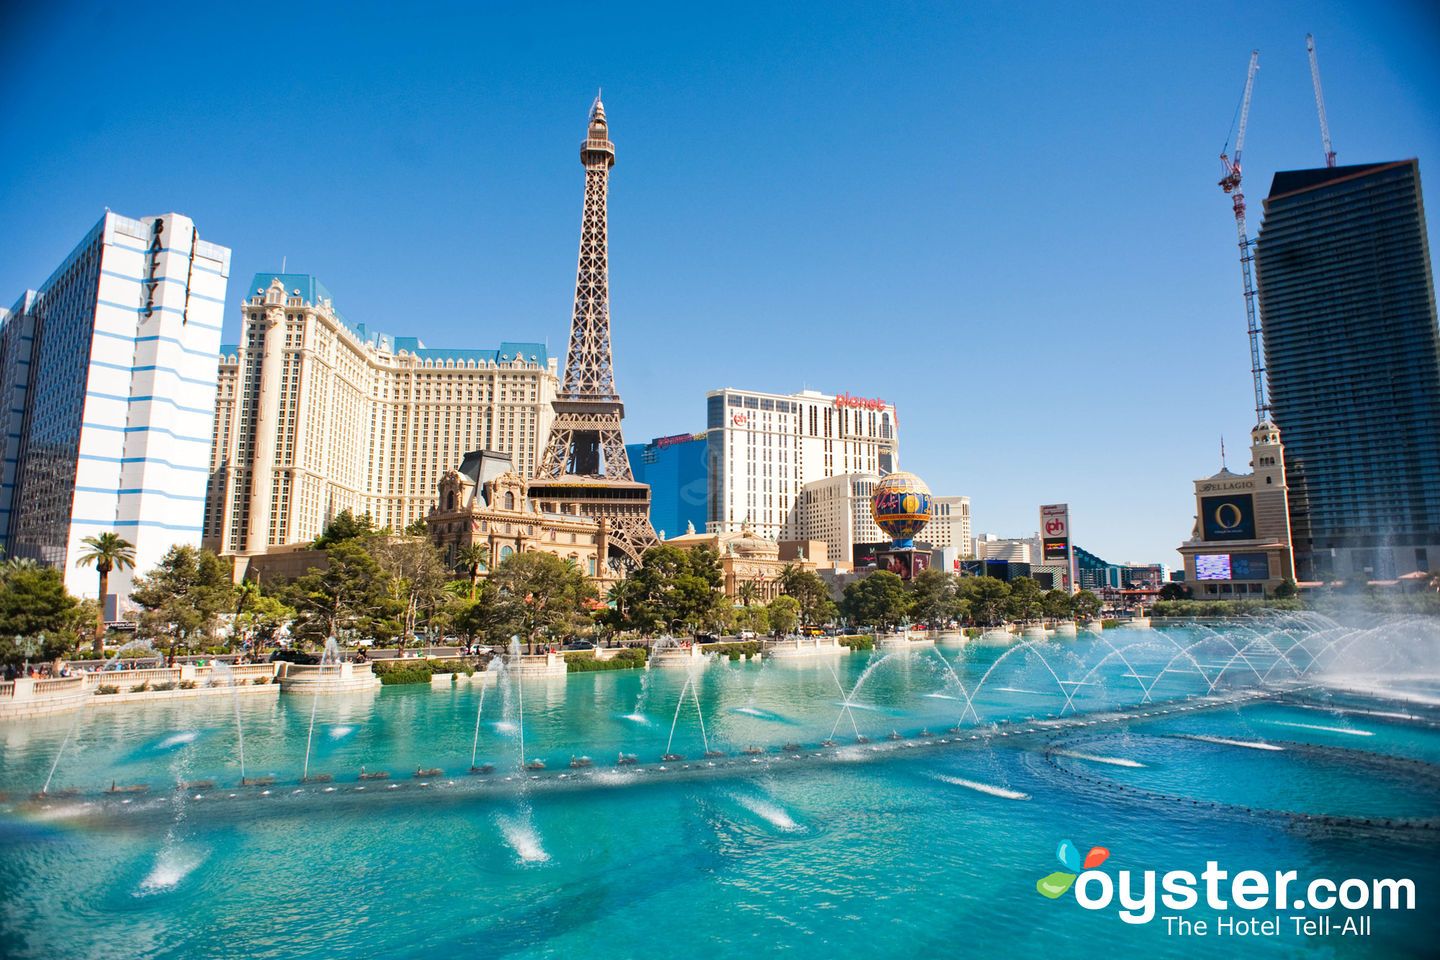 Flamingo Pool Vegas Rules Las Vegas Tips What To Know Before Going To Vegas Oyster